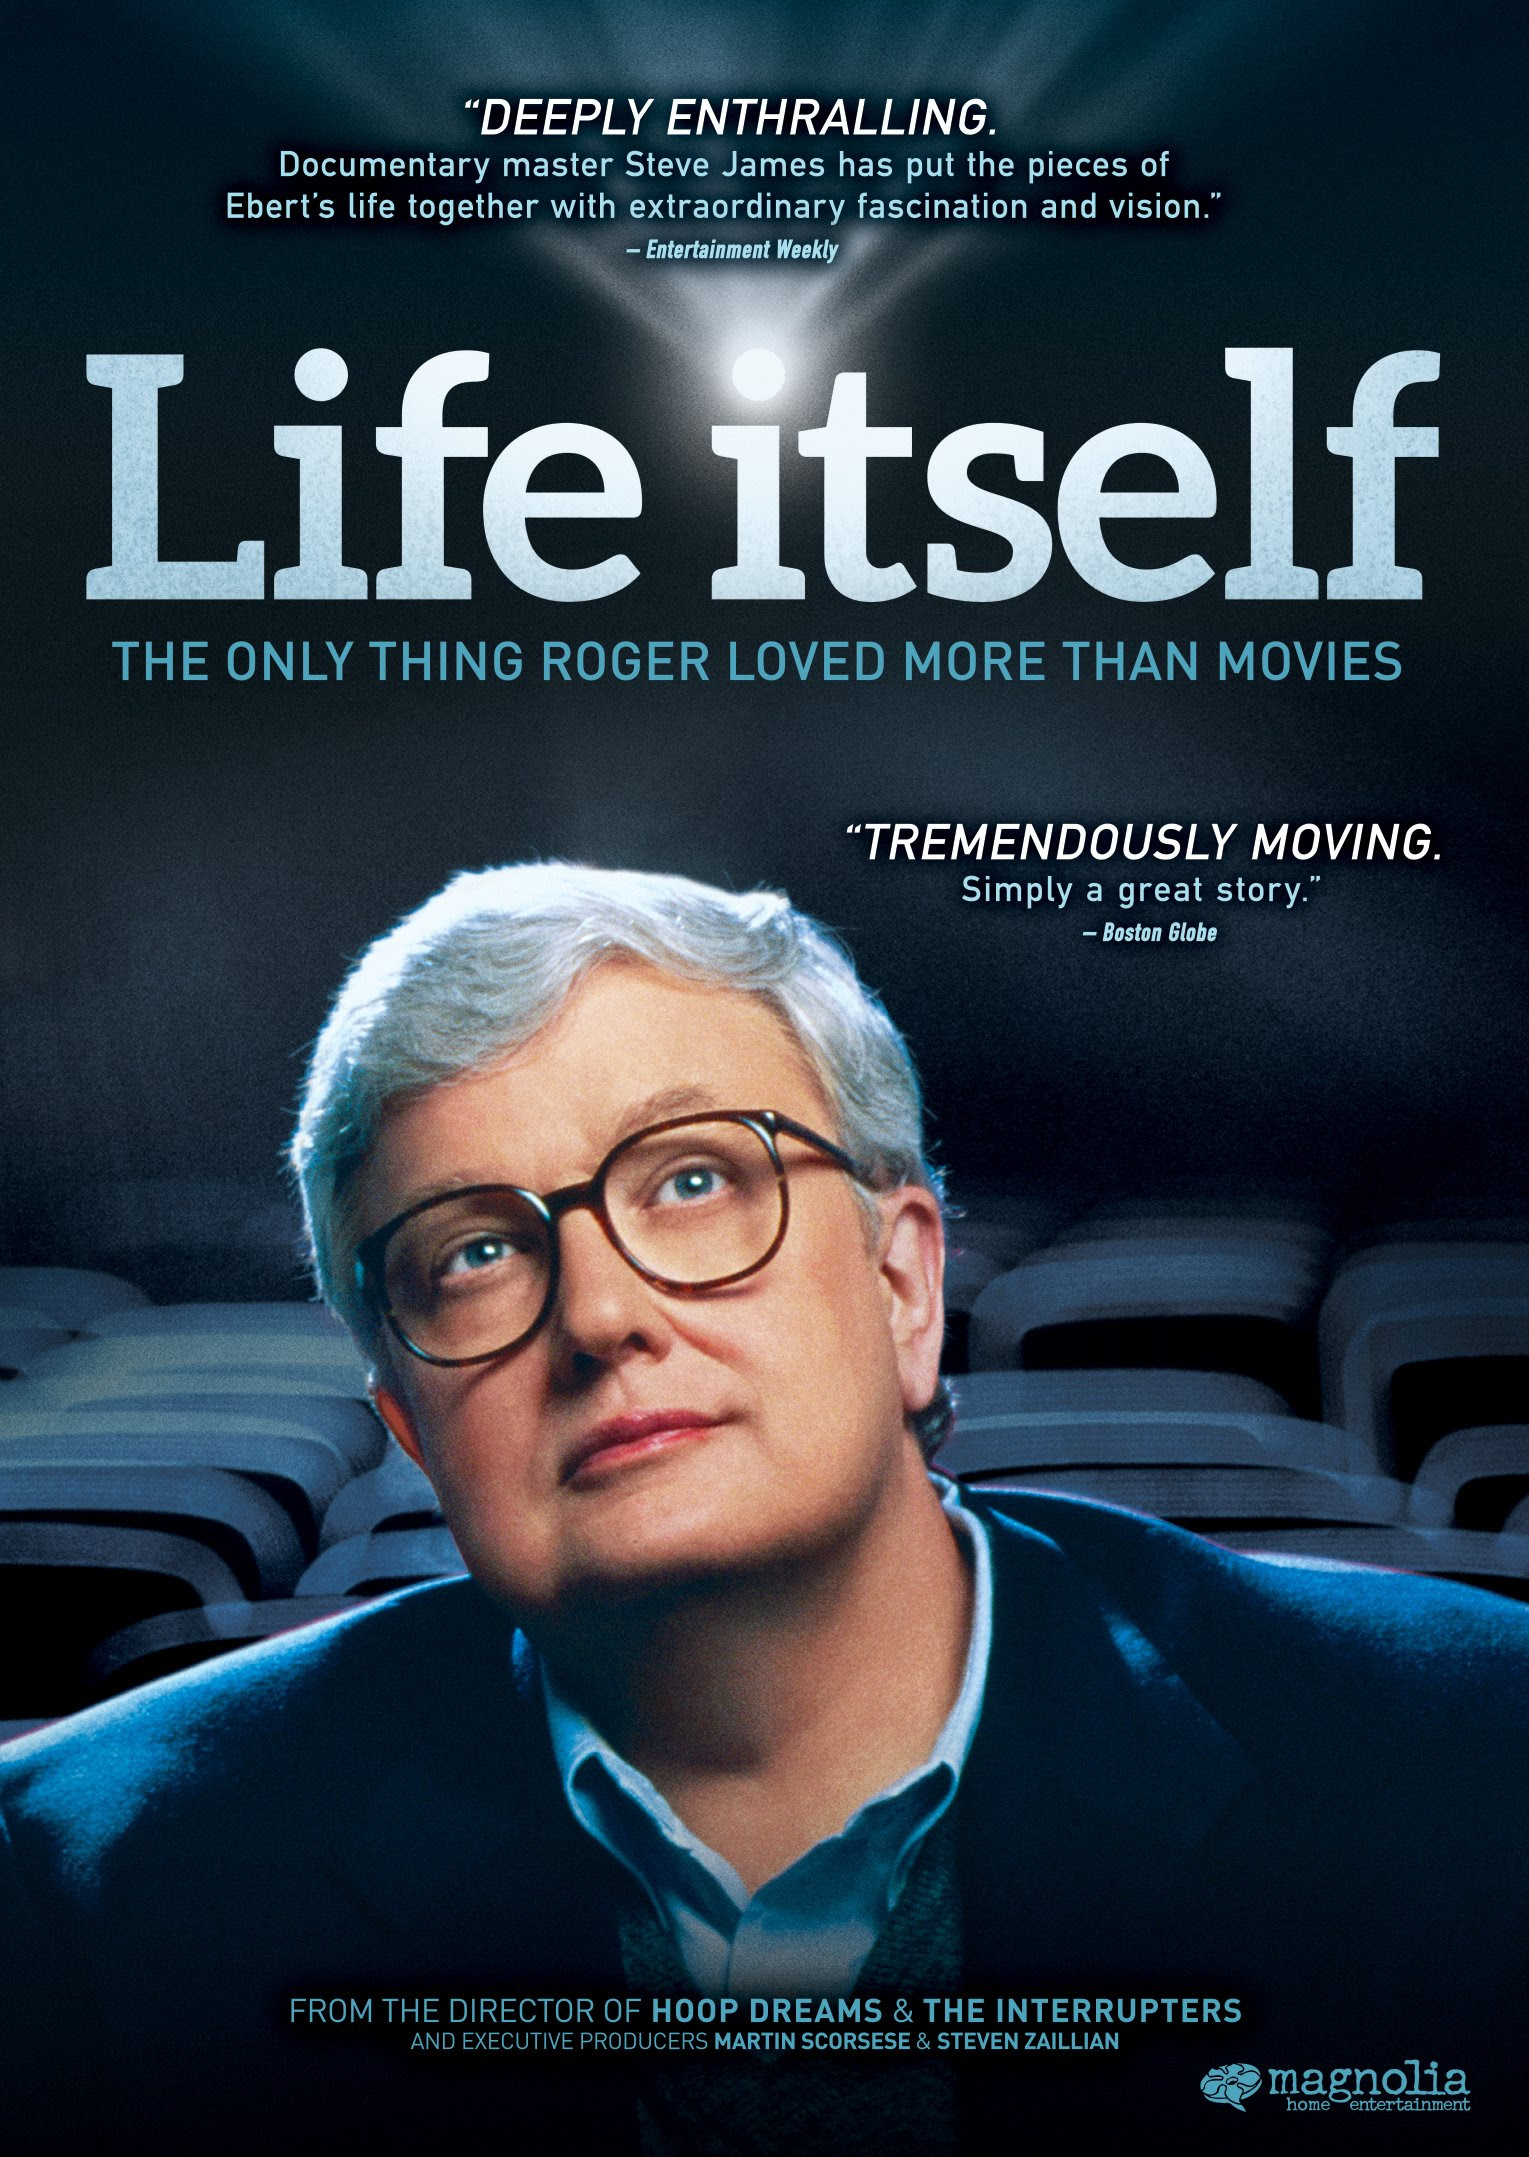 http://www.dvdsreleasedates.com/covers/life-itself-dvd-cover-75.jpg